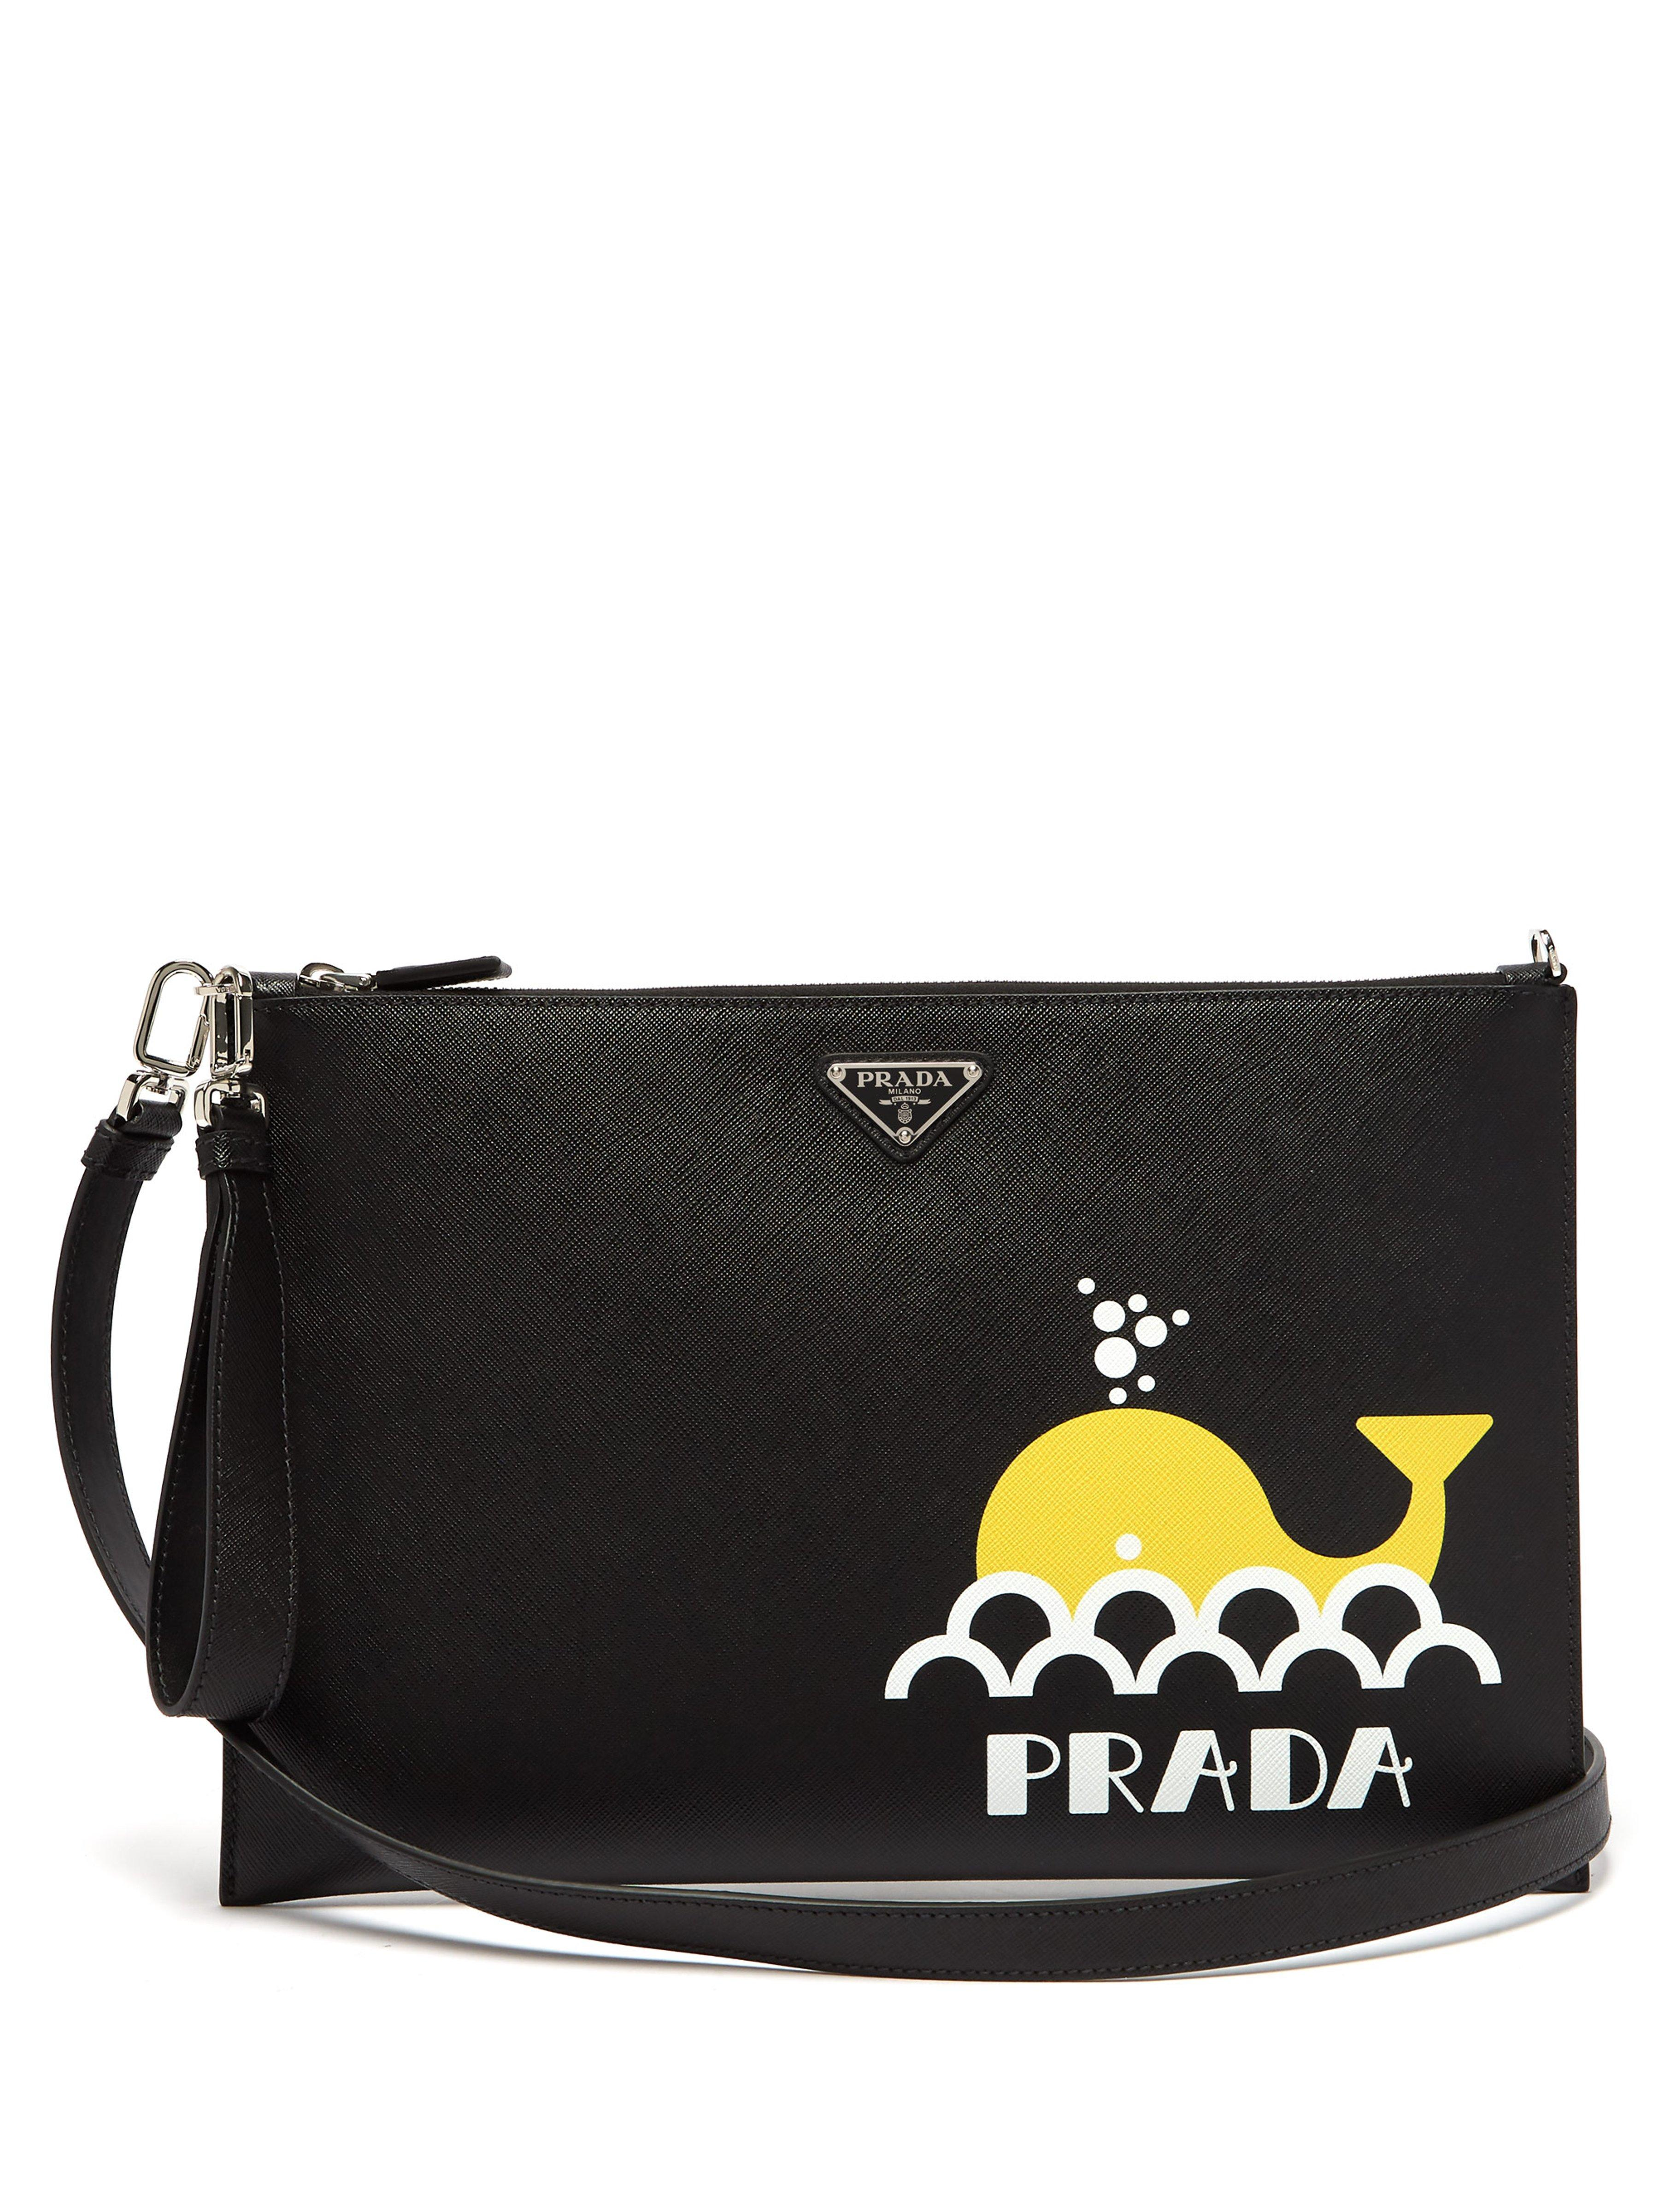 5754111194ef1f Prada - Black Whale Print Leather Pouch for Men - Lyst. View fullscreen